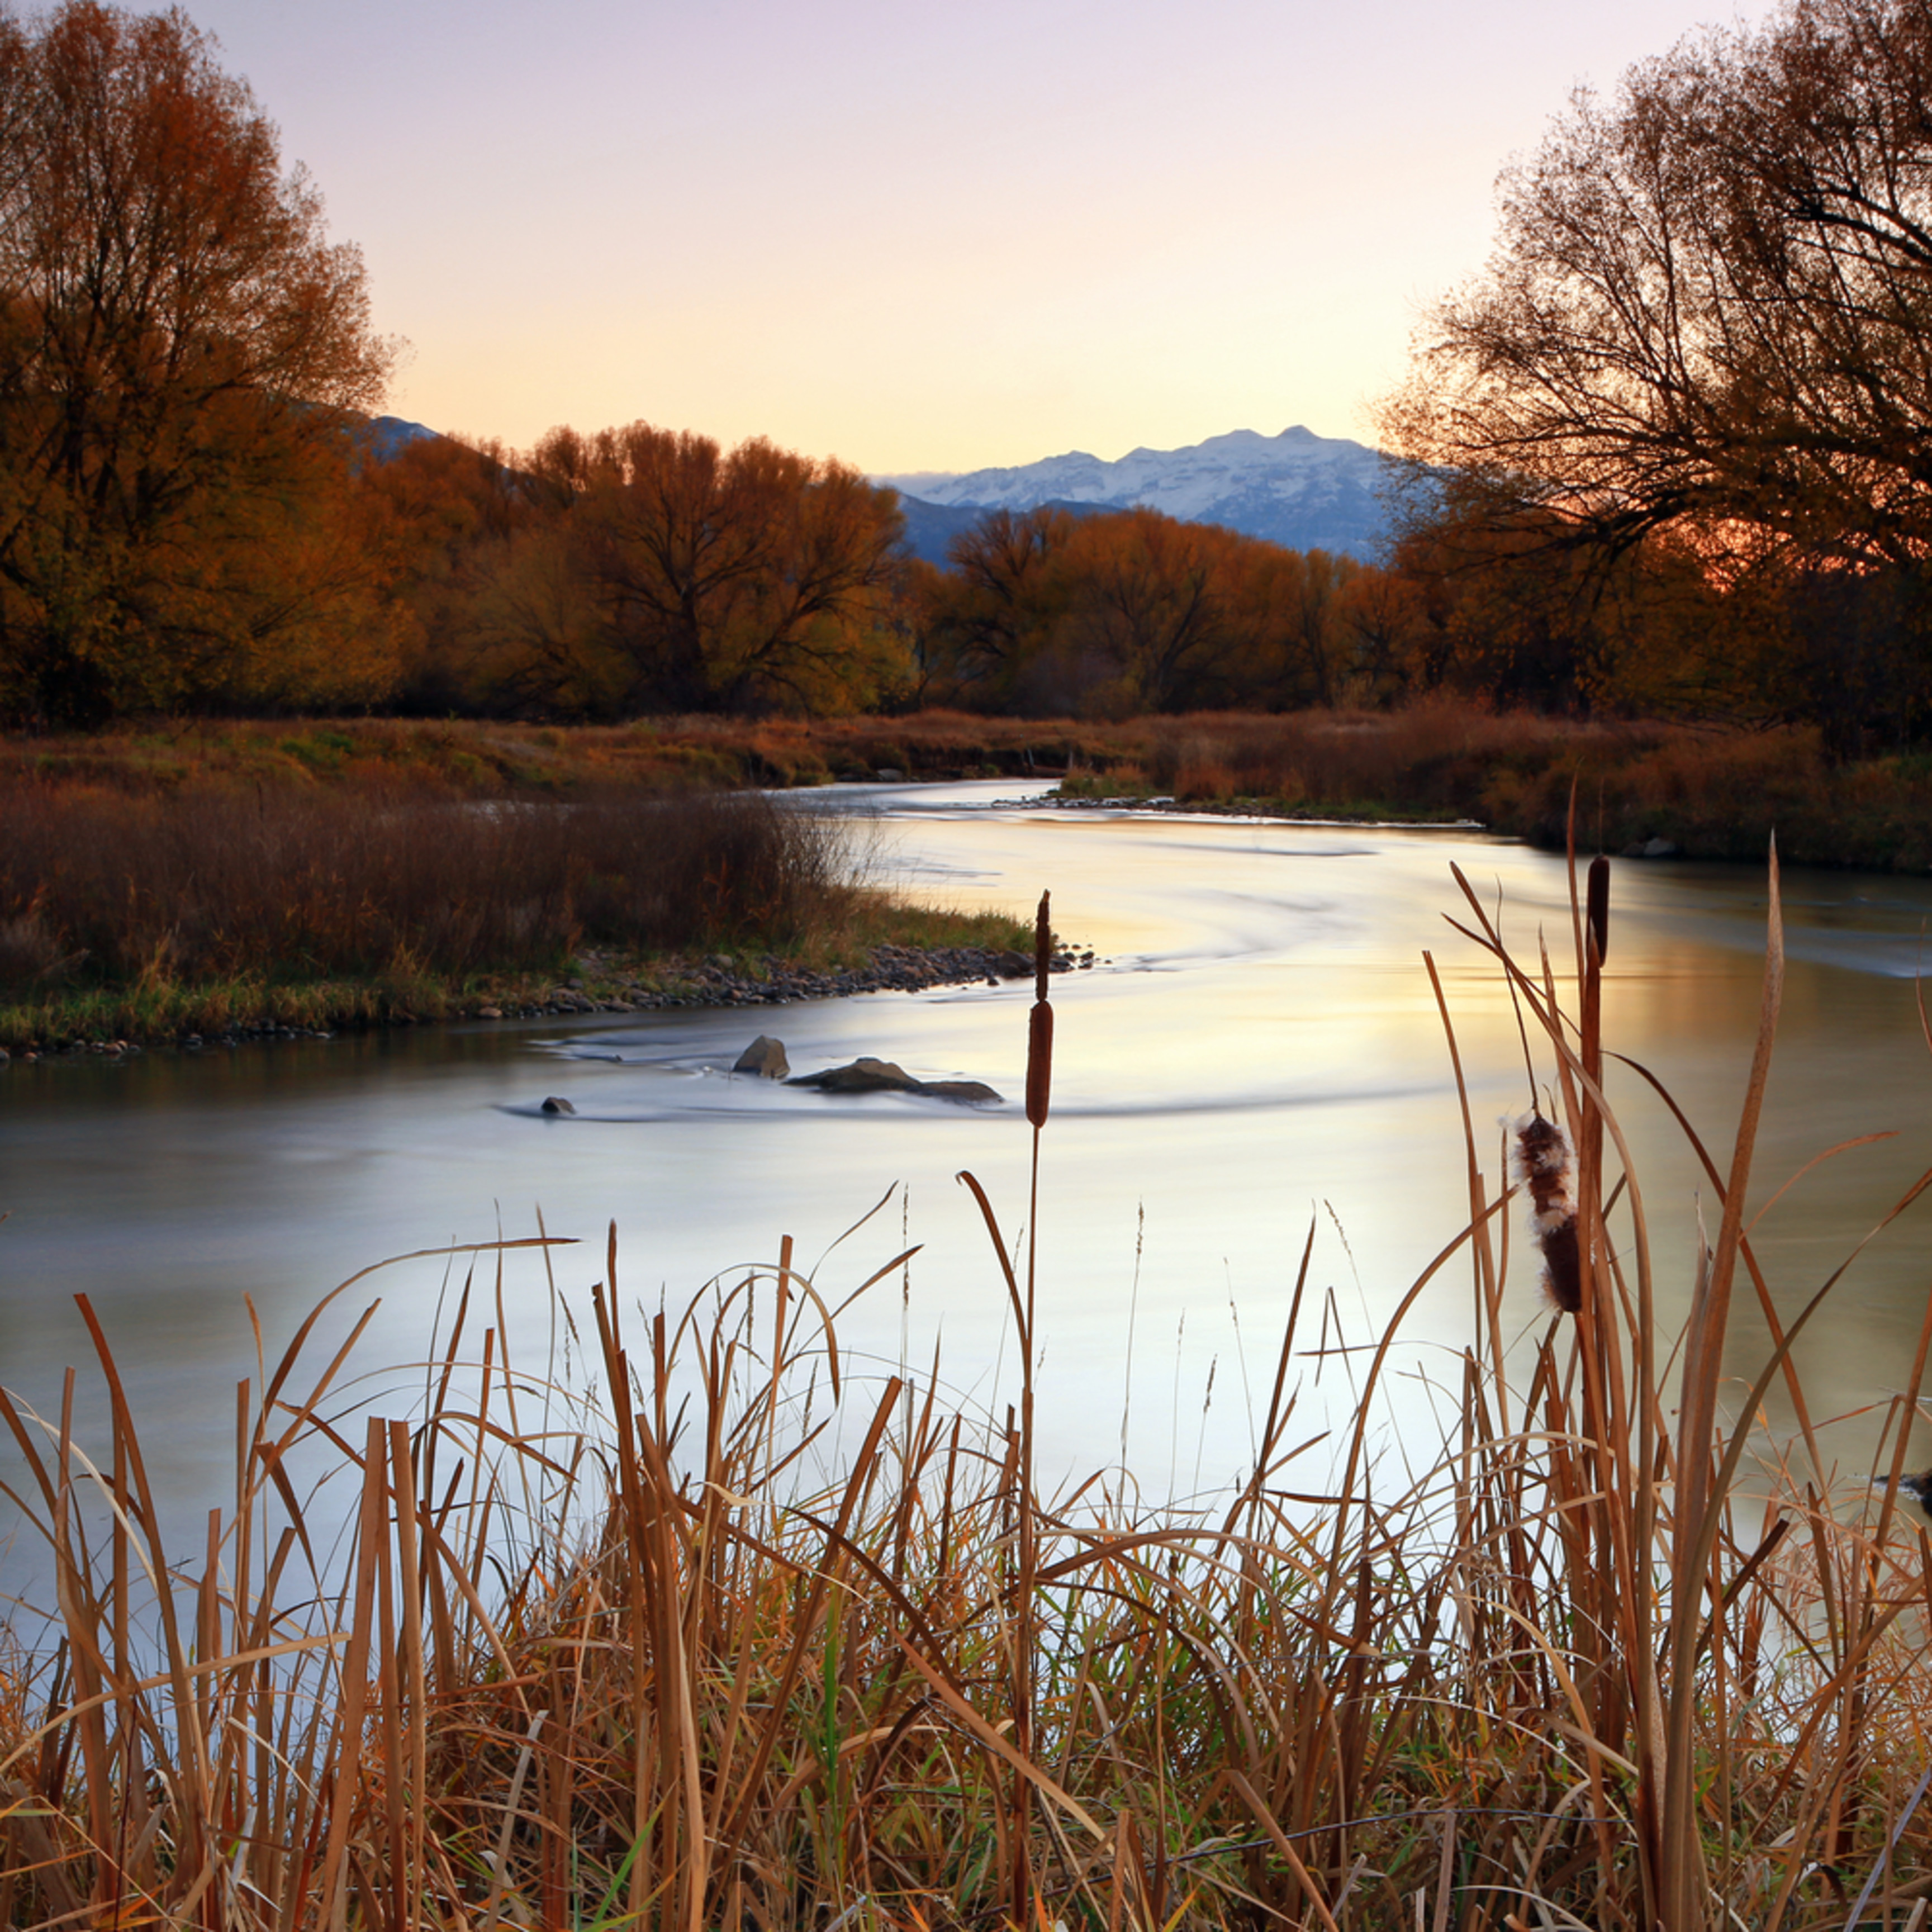 Autumn on the provo river f7grdy